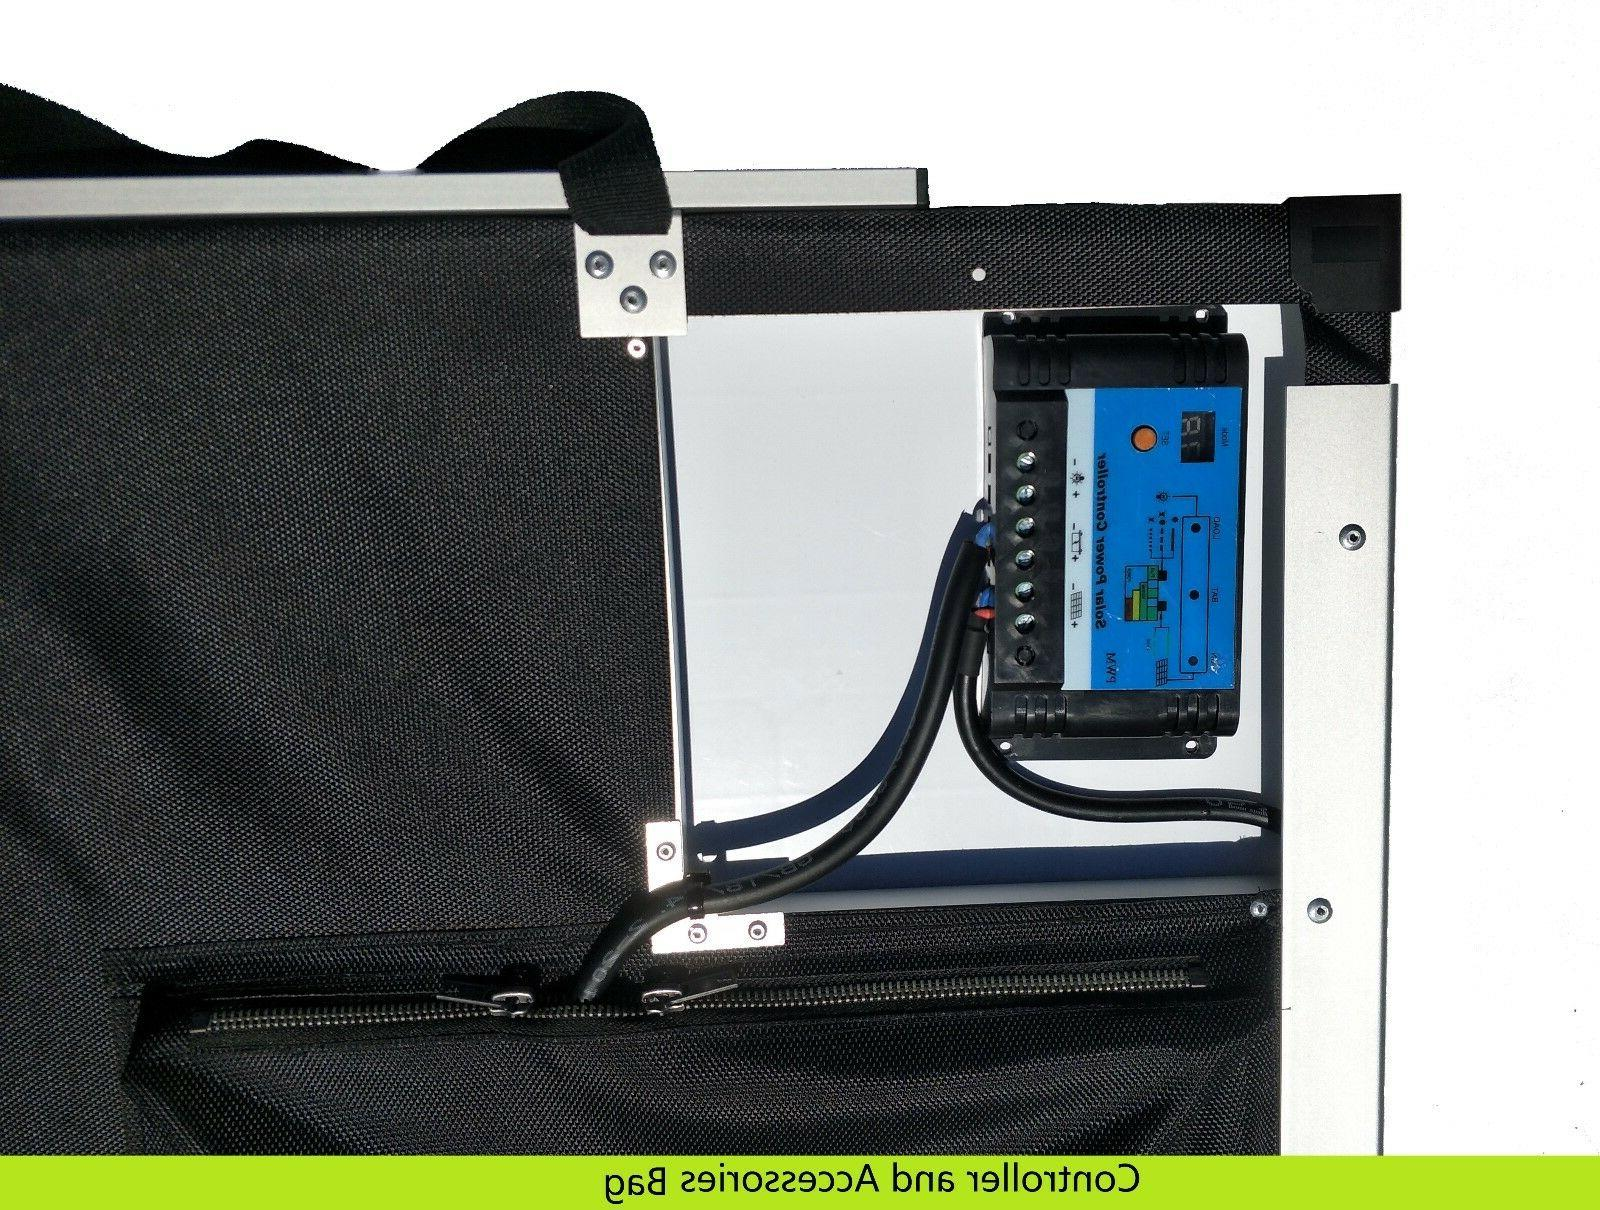 12V solar panel use. Suit &